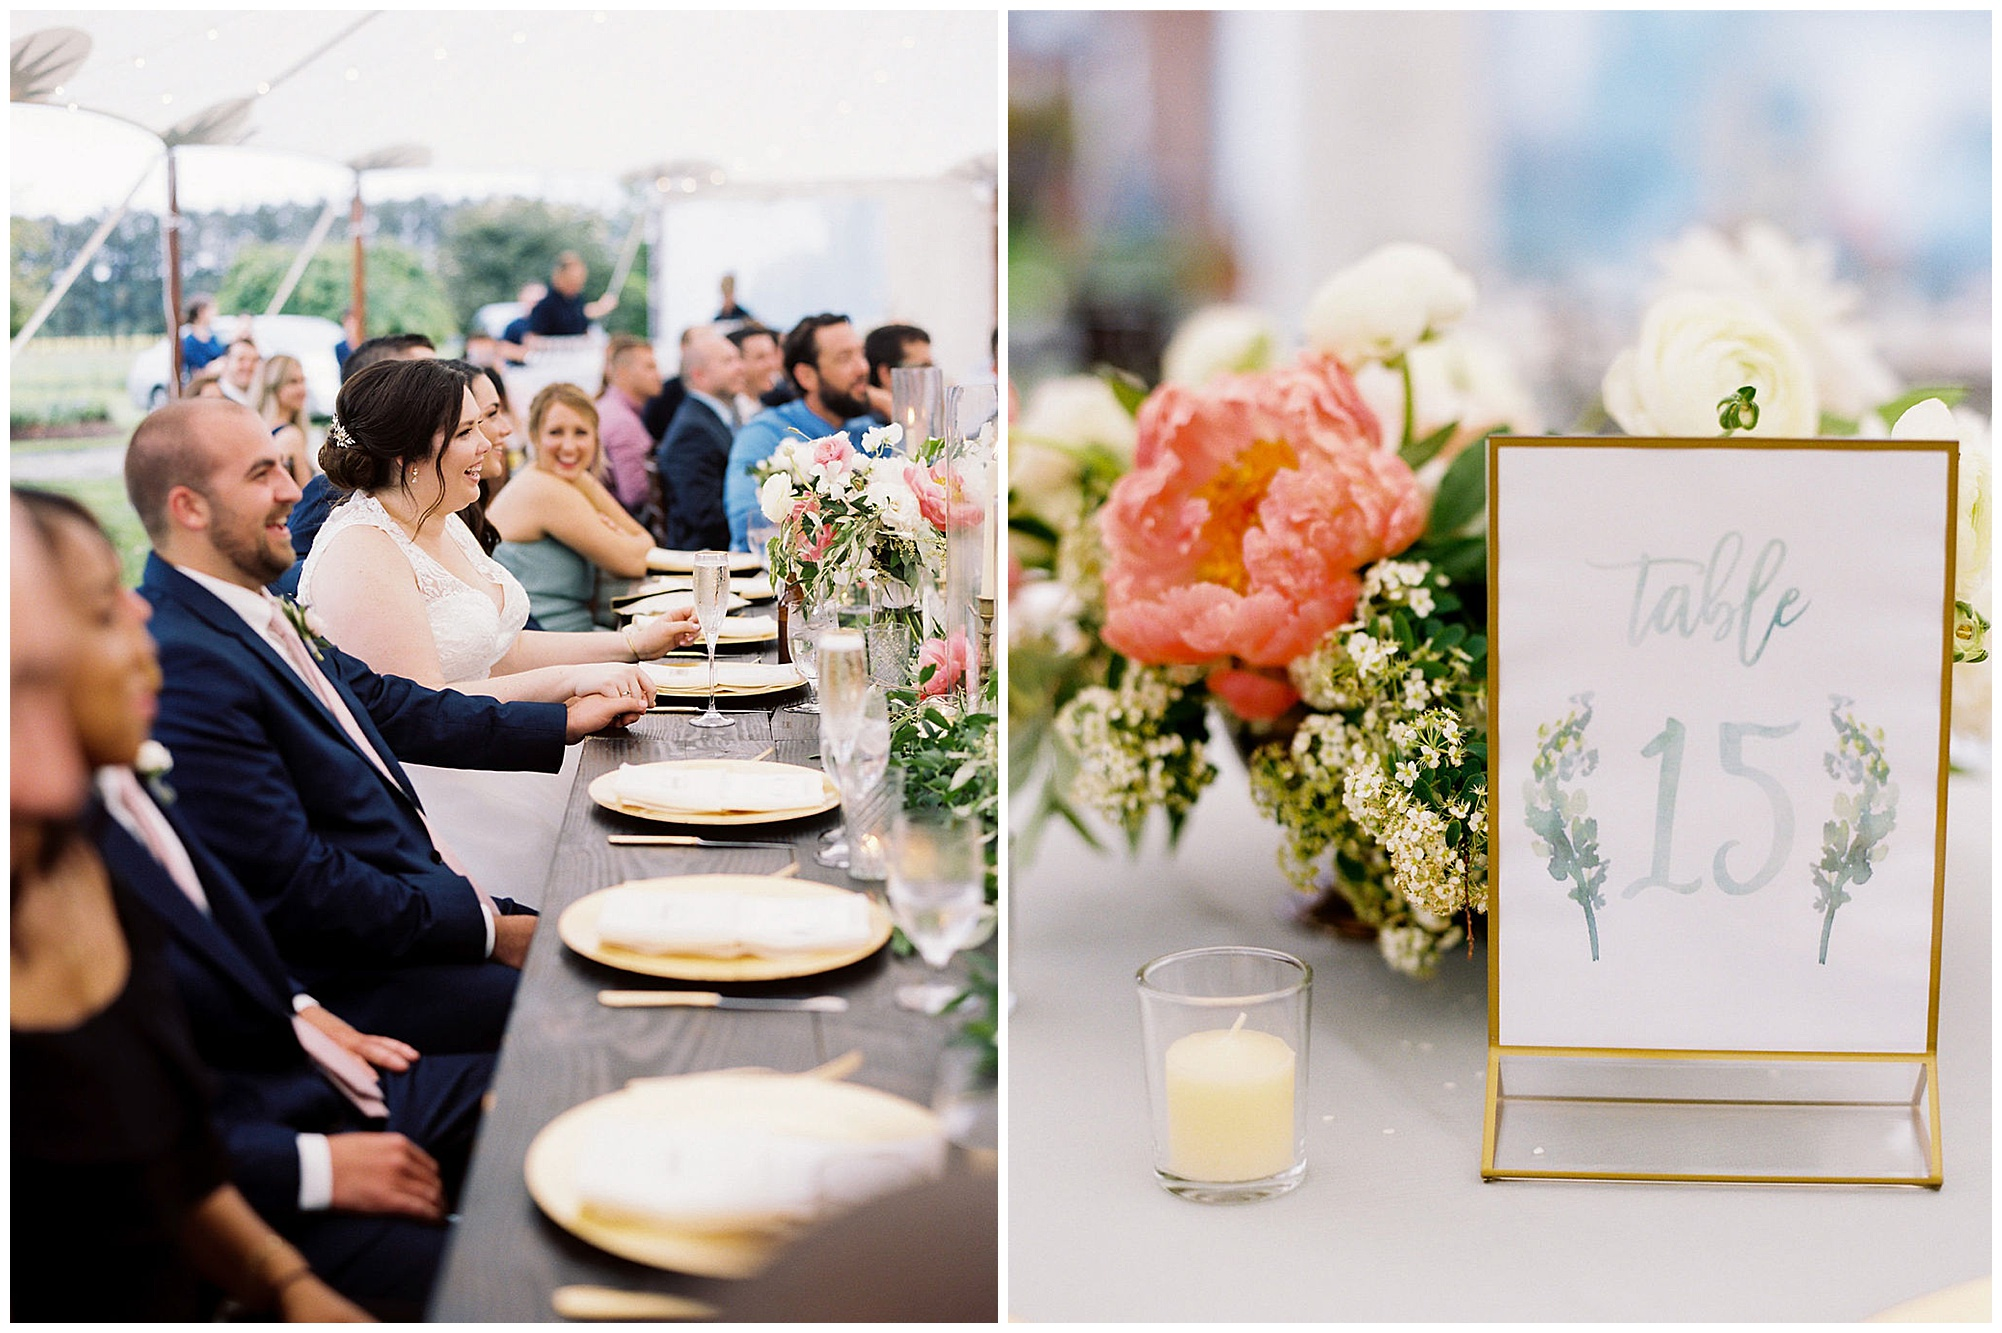 classic, timeless, modern, romantic wedding inspiration at inn at huntingfield wedding on maryland eastern shore. pink peonies floral arrangements, table number cards display setting, and bride and groom smiling at rainy day reception